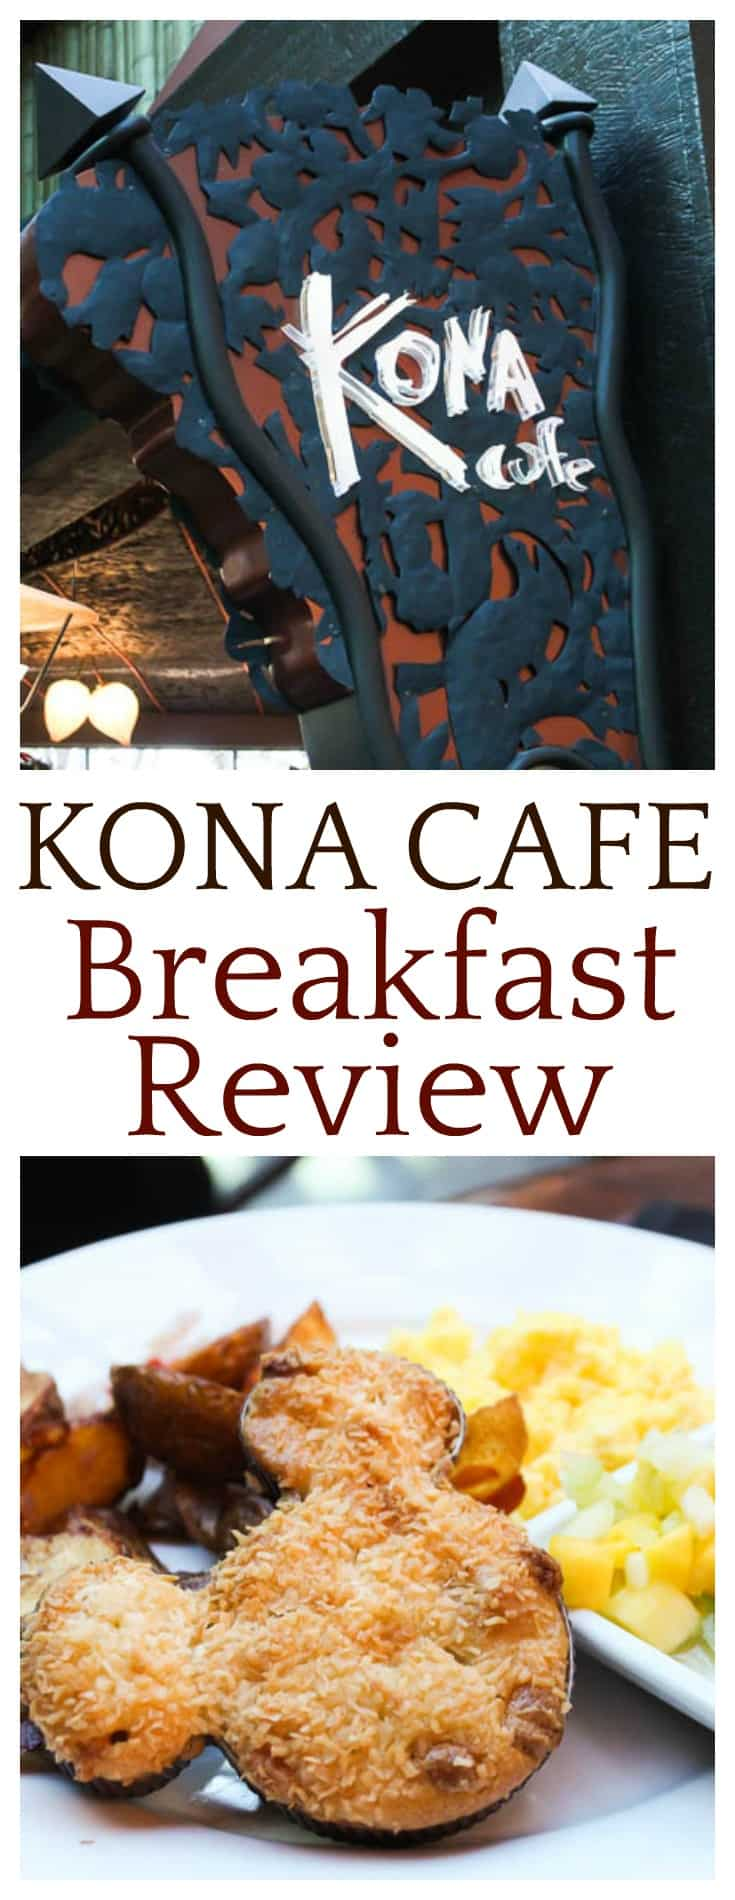 This Kona Cafe breakfast review is based on my experience when visiting the restaurant in November 2017 with my family. The restaurant can be found at Walt Disney World inside of Disney's Polynesian Resort.